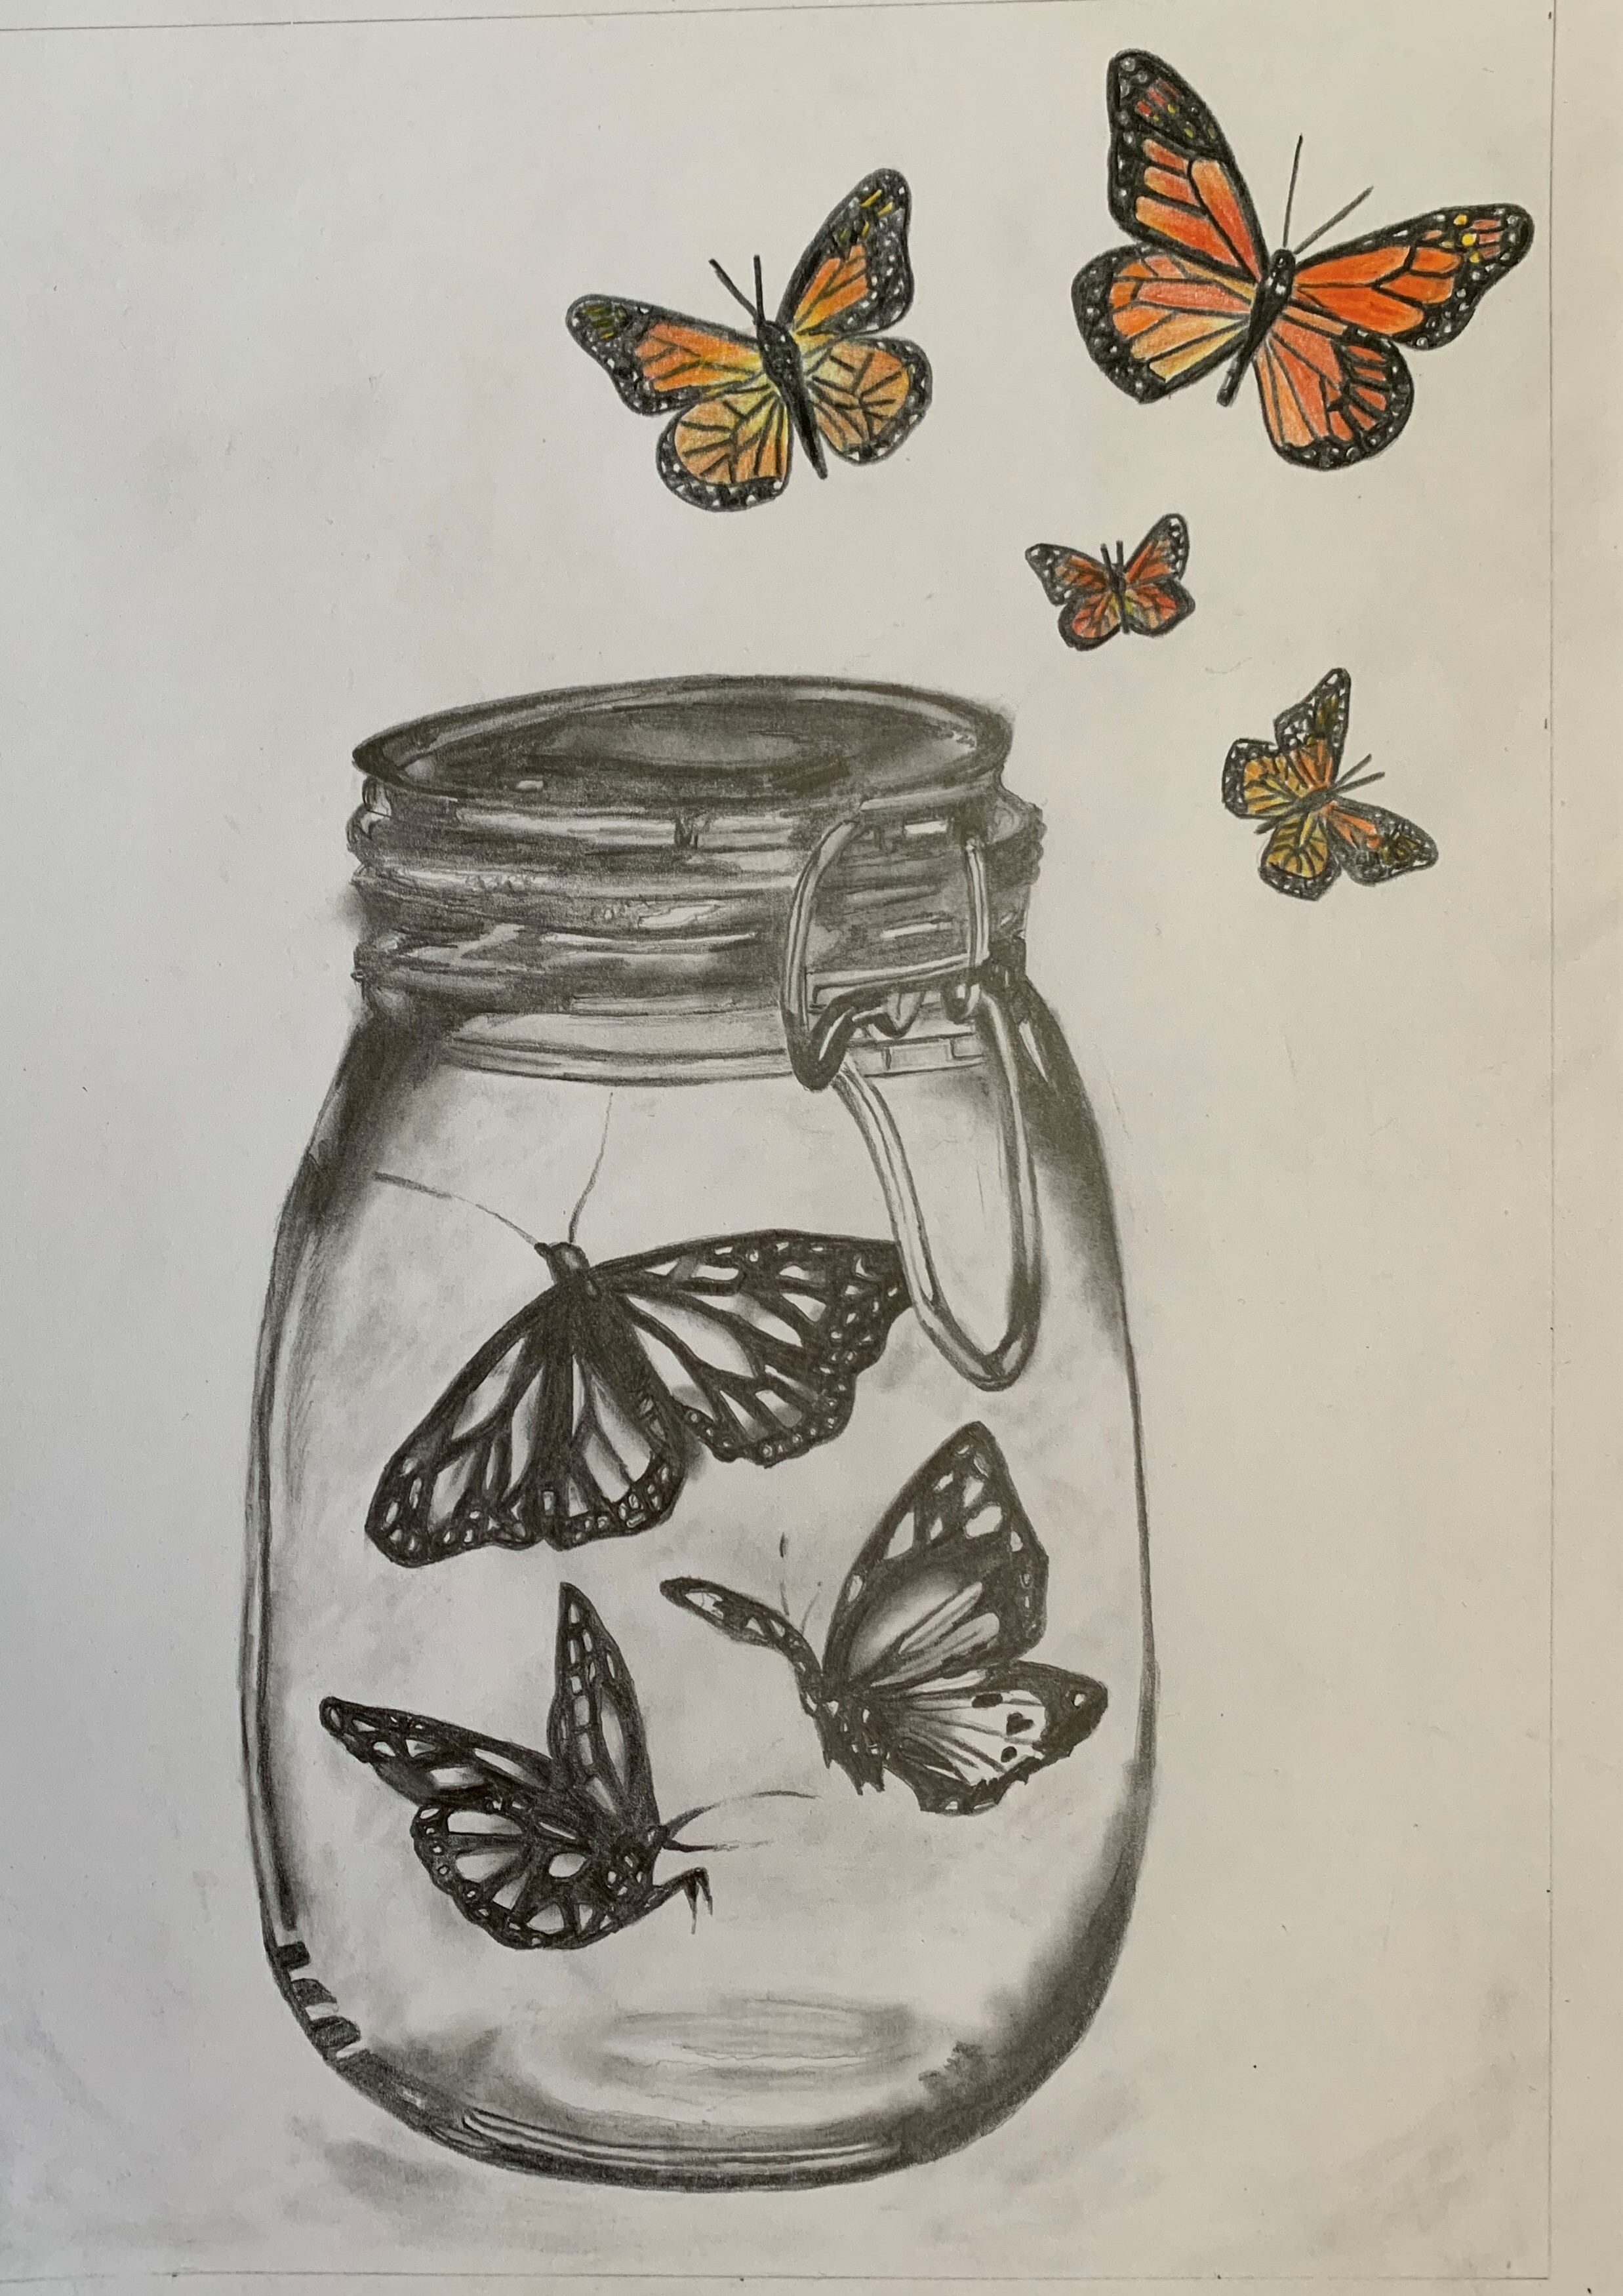 wed pm Beth's buttefly jar